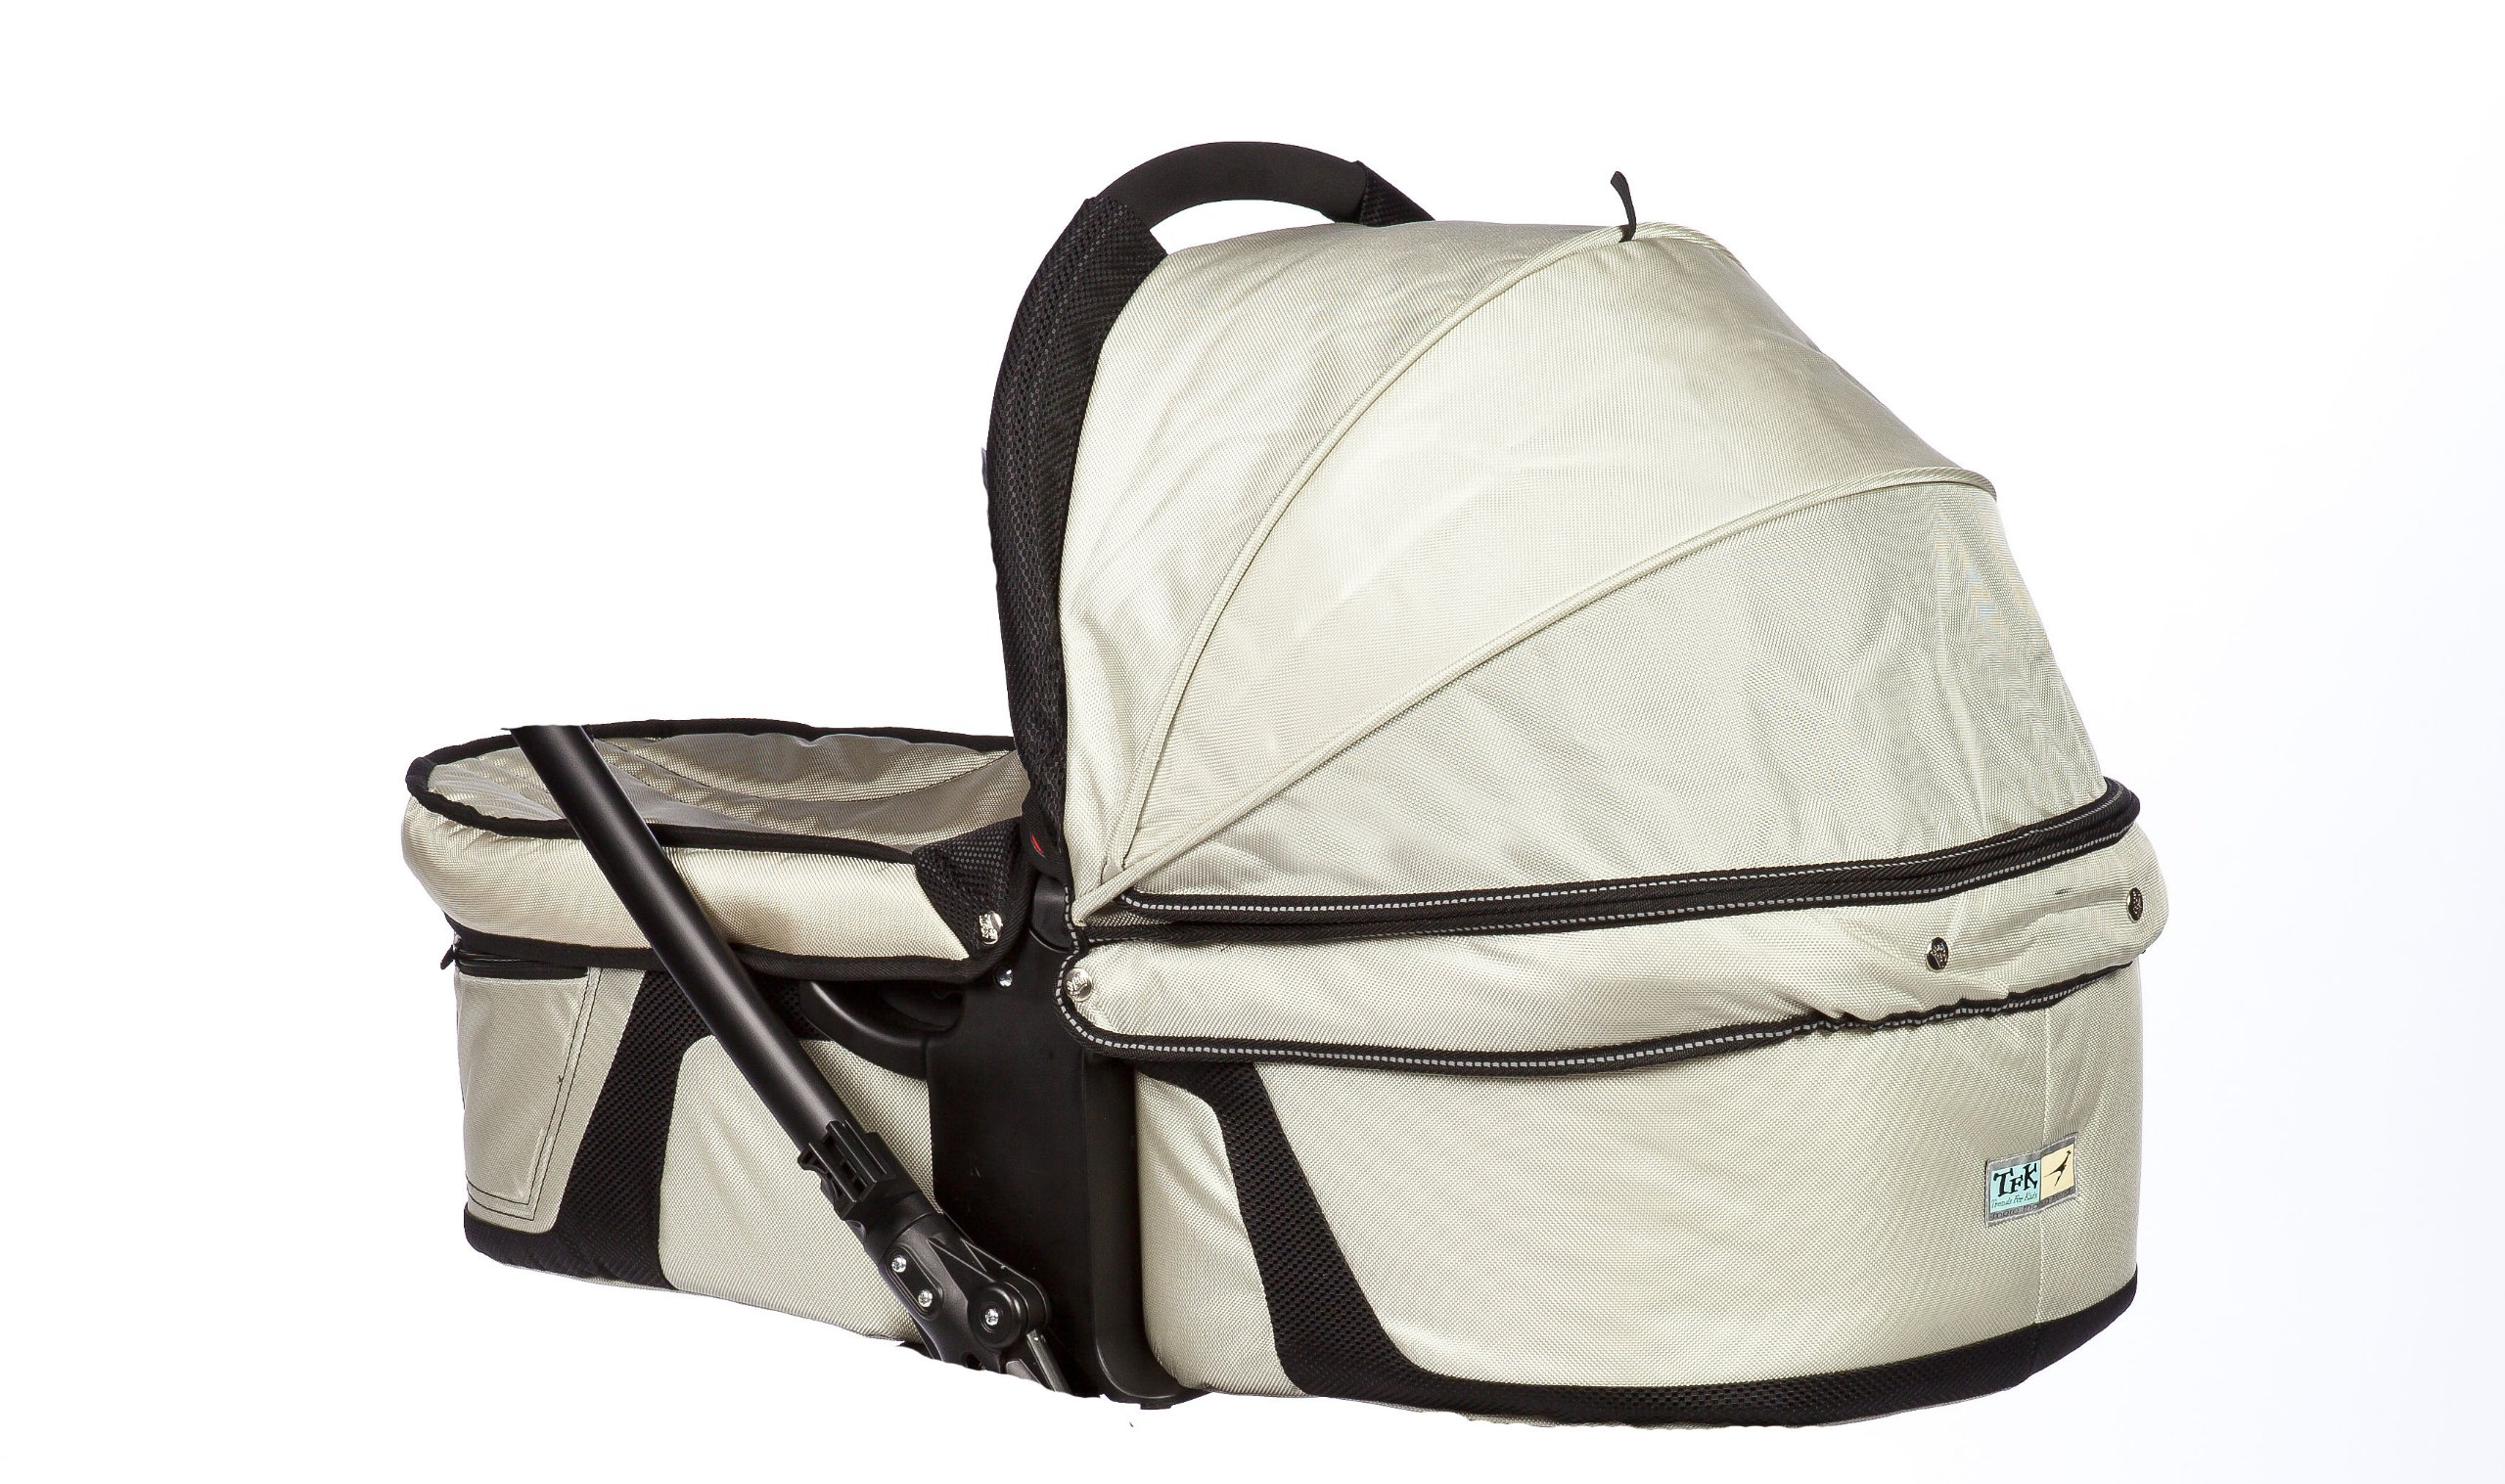 Trends For Kids Quick Fix Carrycot, Pebble